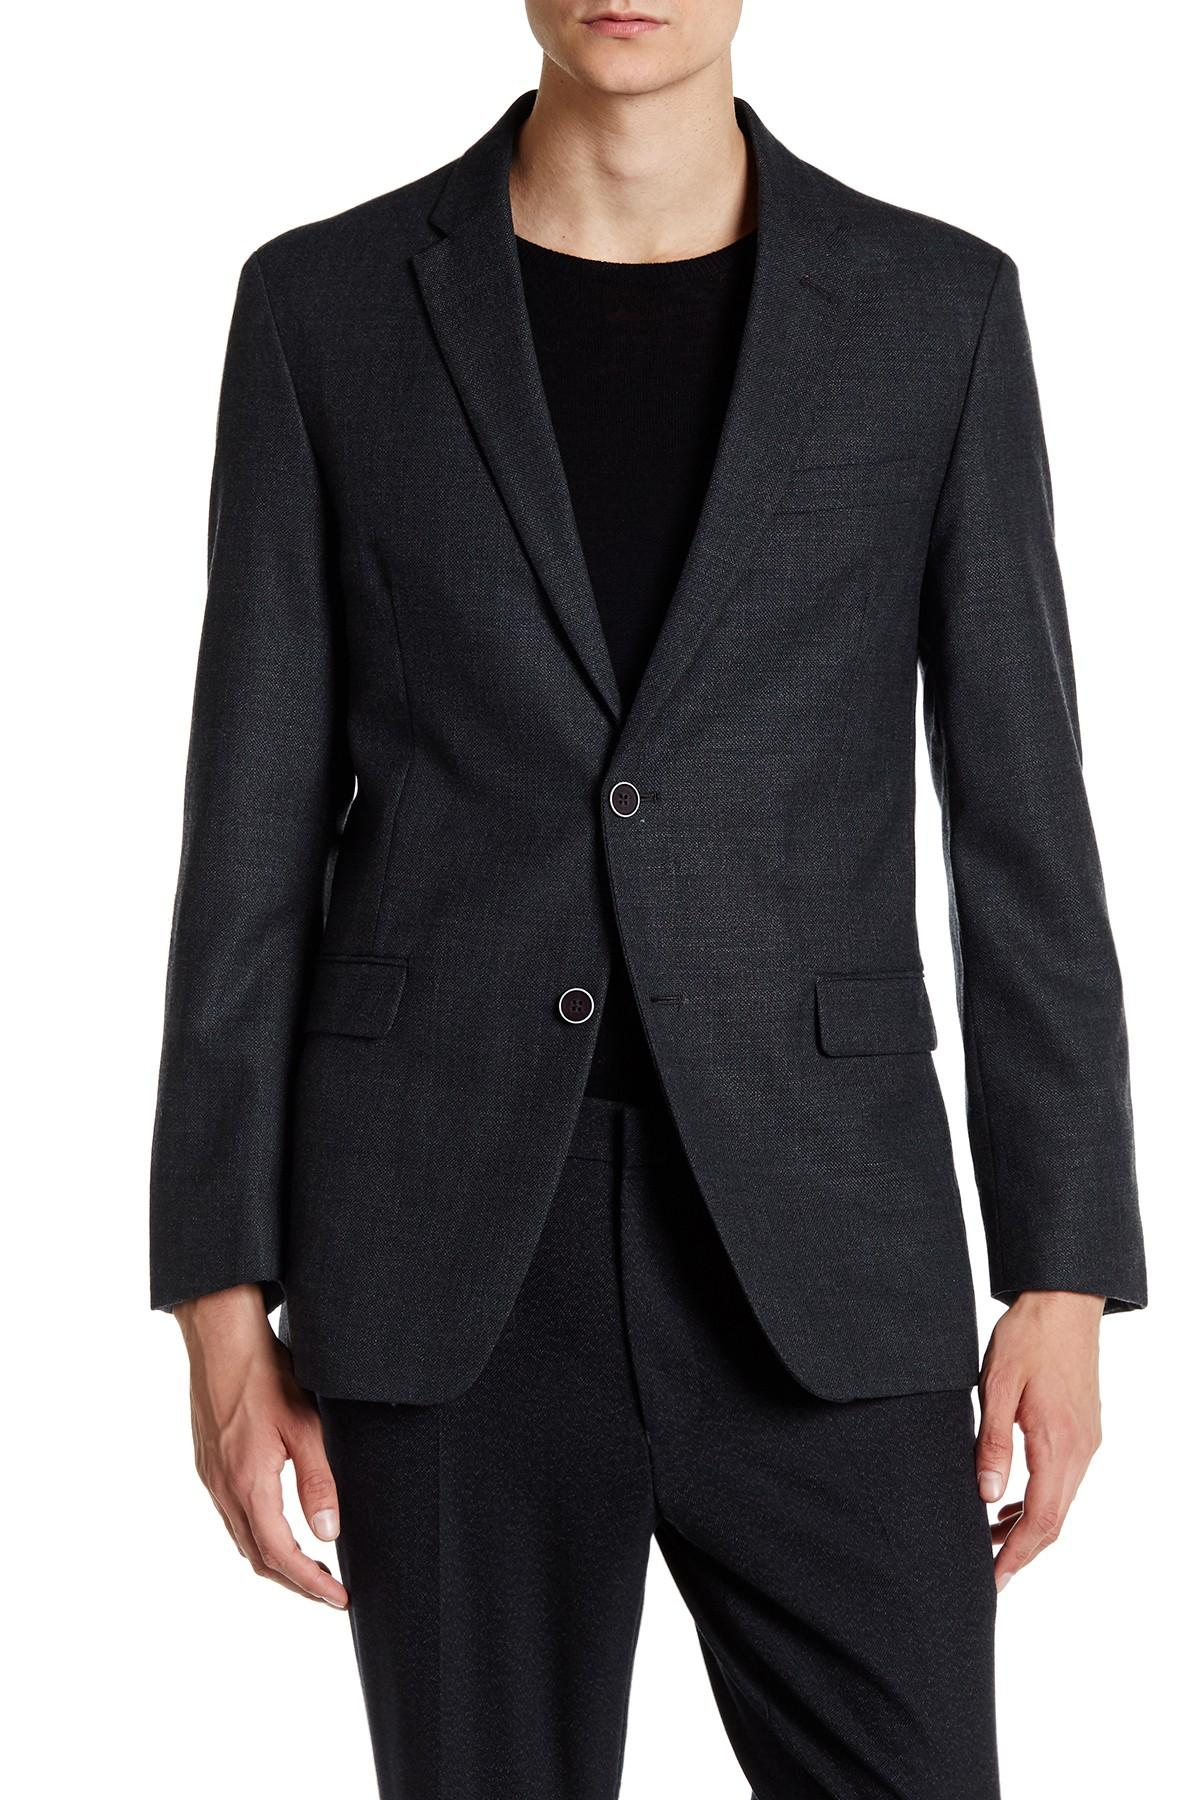 Tommy hilfiger Unconstructed Jacket in Gray for Men